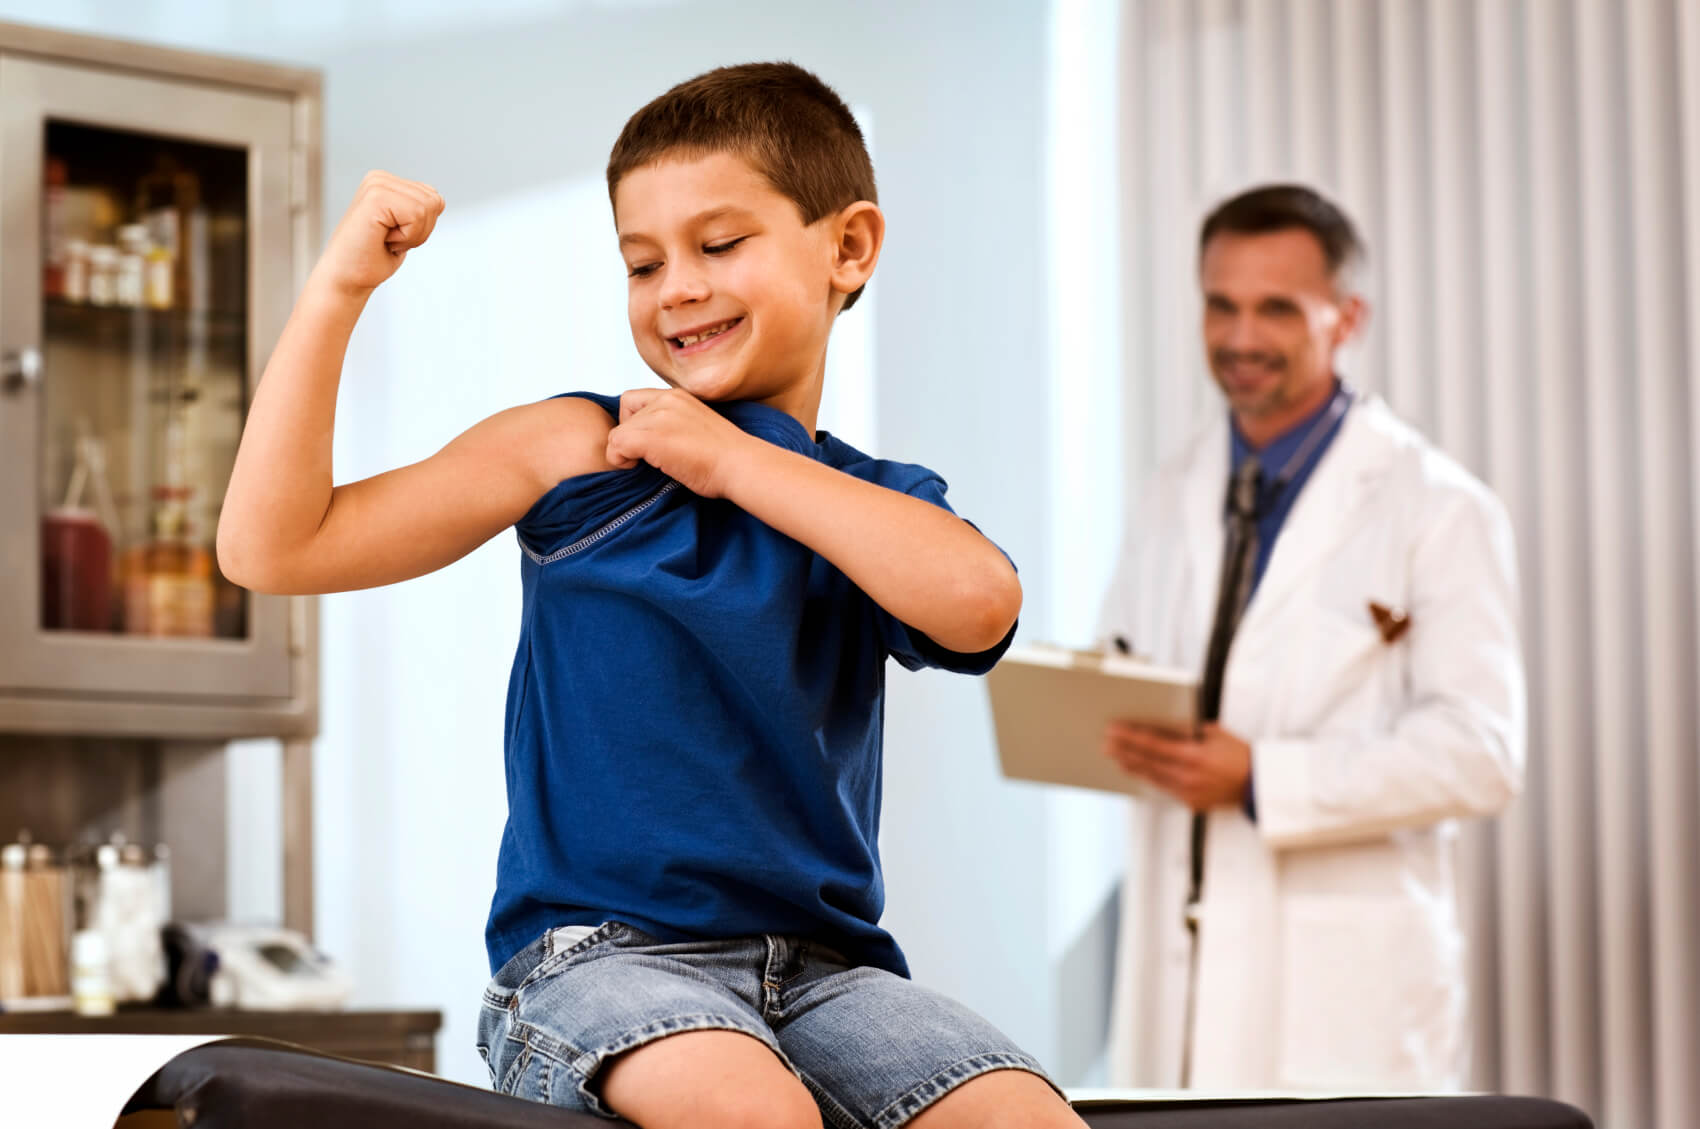 Healthy fit kid doctor check-up